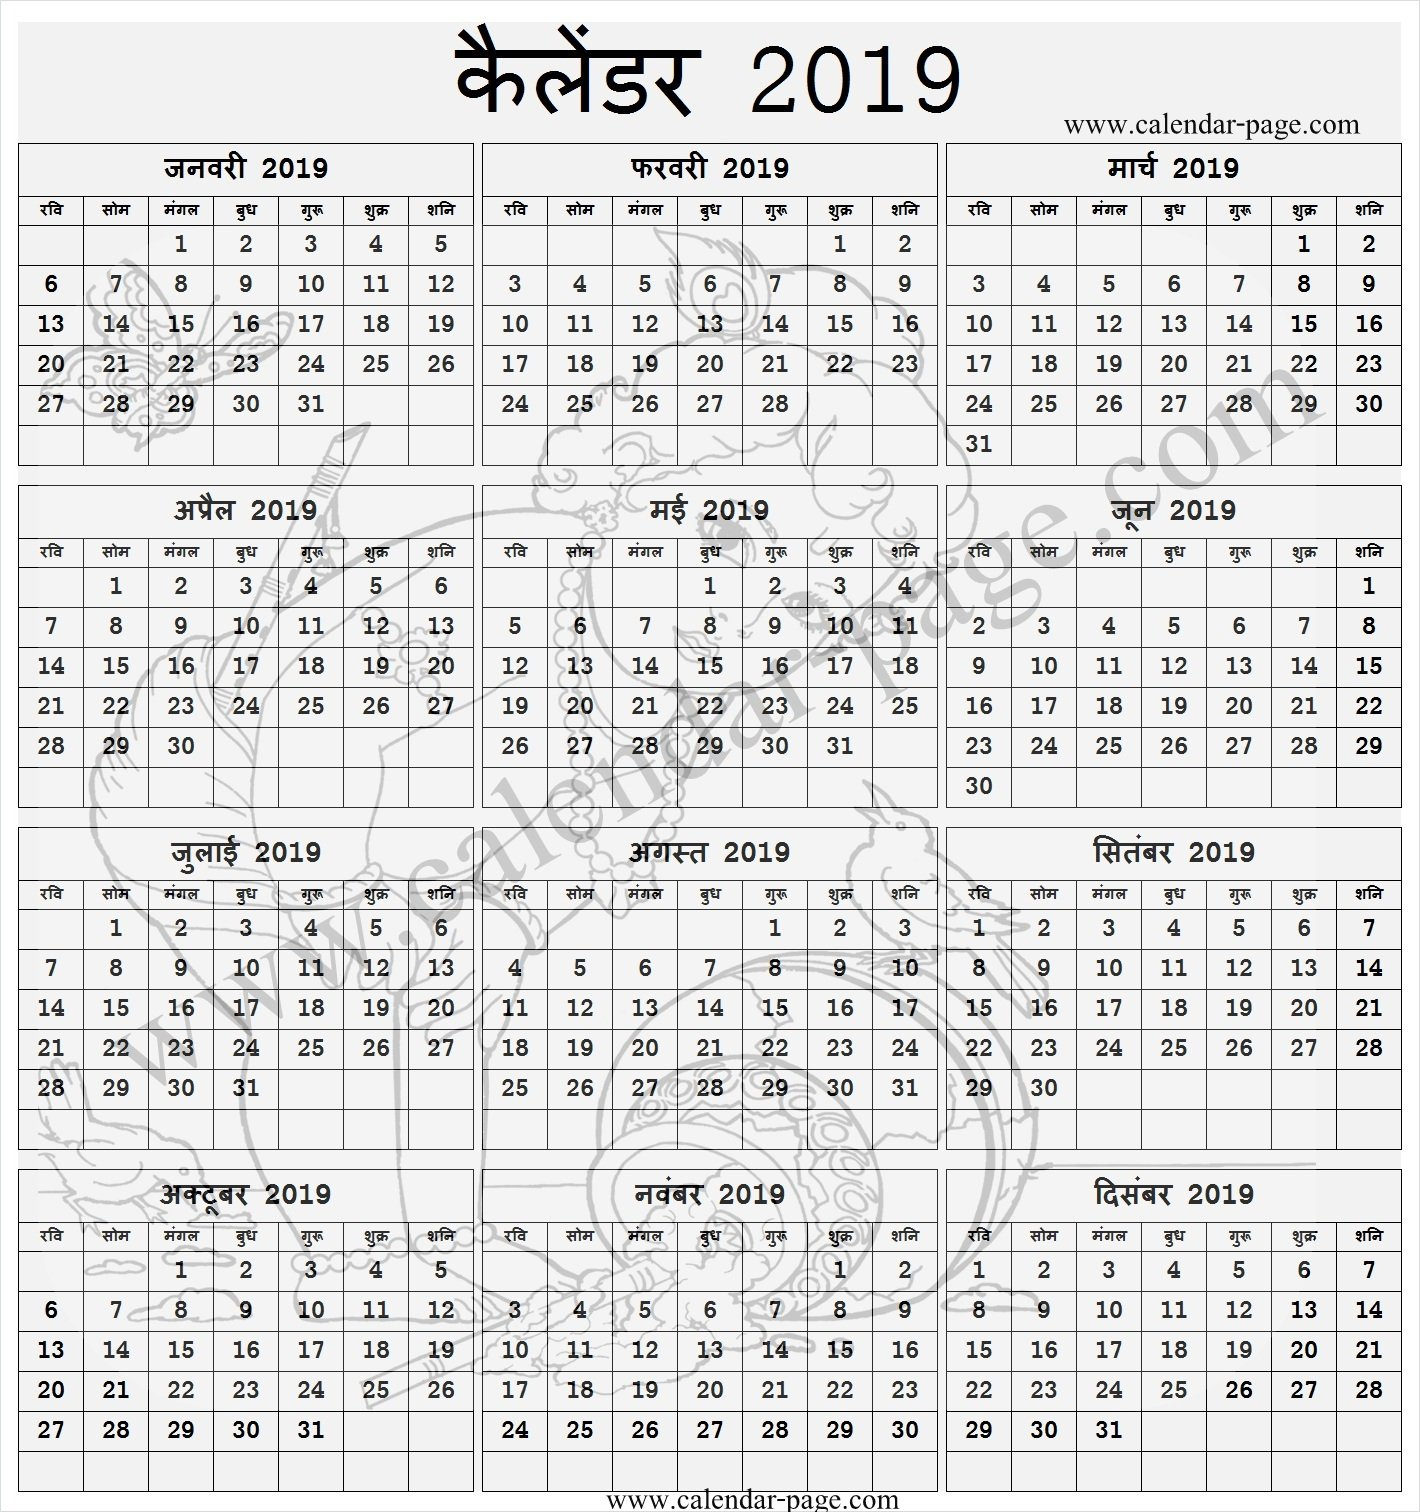 2019 Hindu Calendar In Hindi Template | Calendar 2019 In Hindi Calendar 2019 Hindu